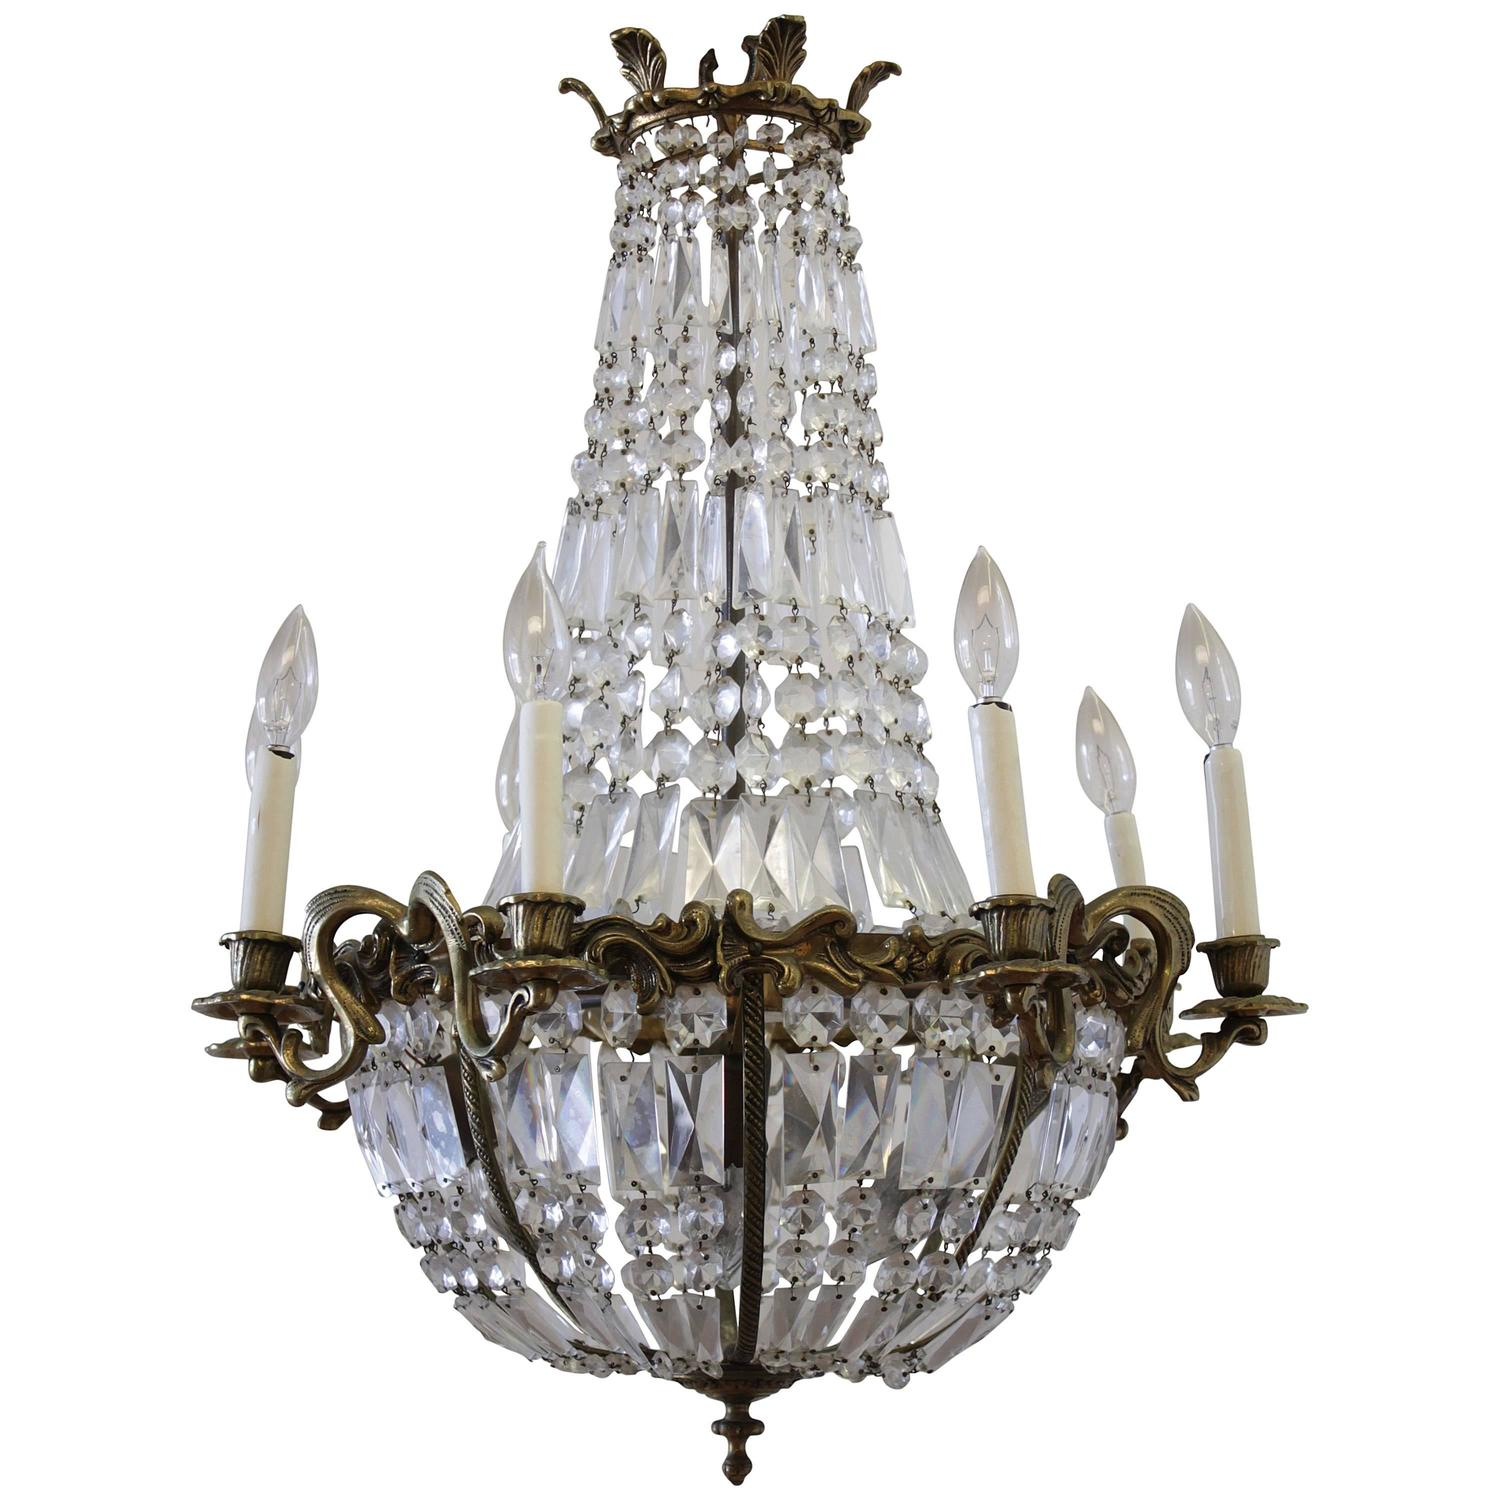 Antique Gilt Bronze Empire Style Chandelier with Crystals